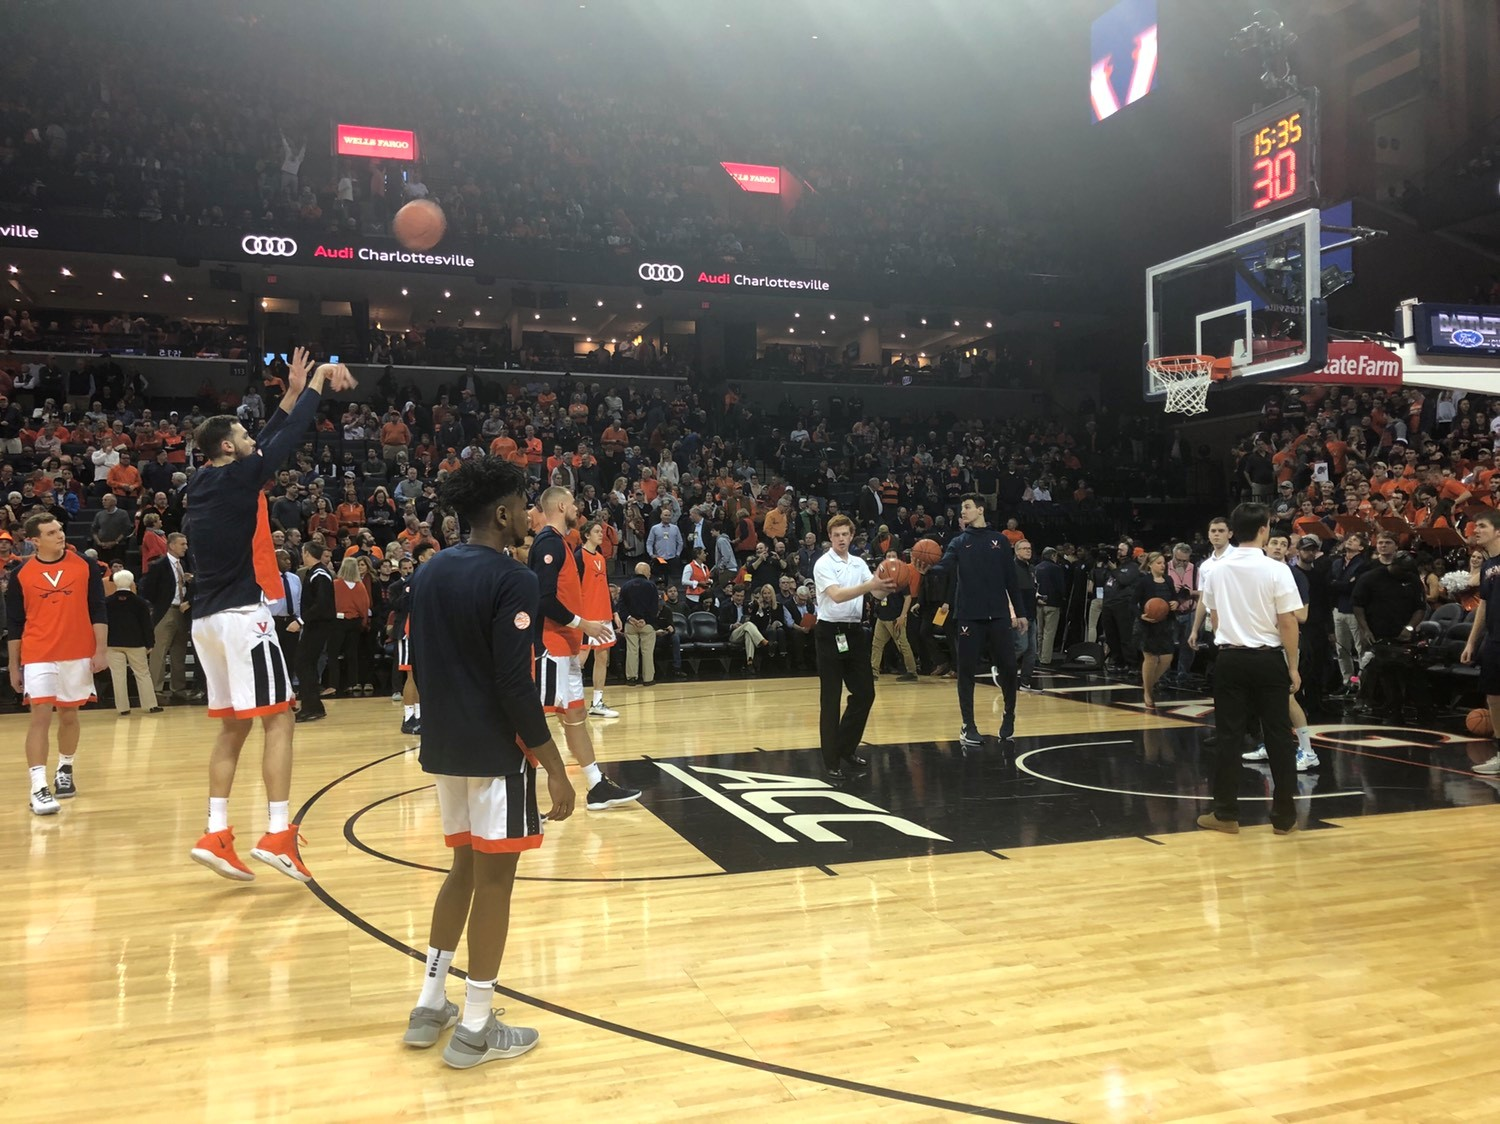 UVA Basketball_1549752479044.jpg.jpg